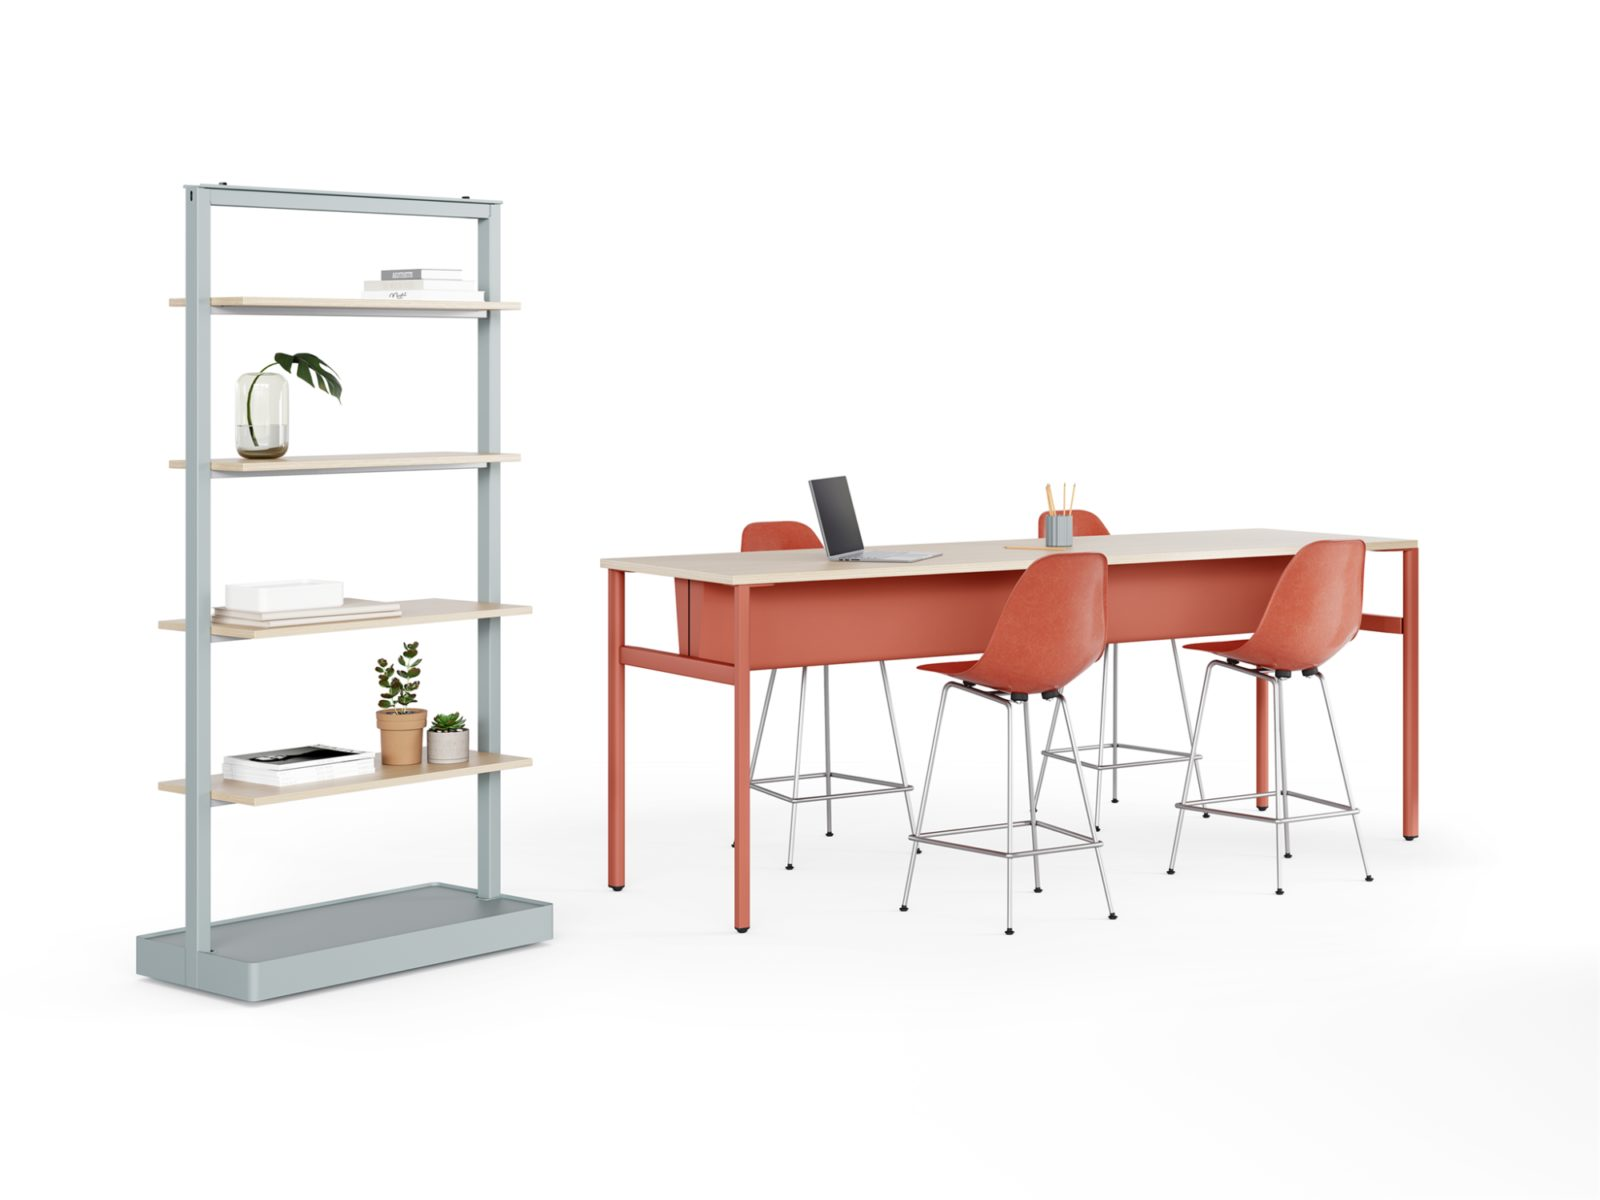 A tall light blue Agile Wall with 4 shelves holding office materials next to a burnt red communal table surrounded by matching red Eames Plastic Stools.